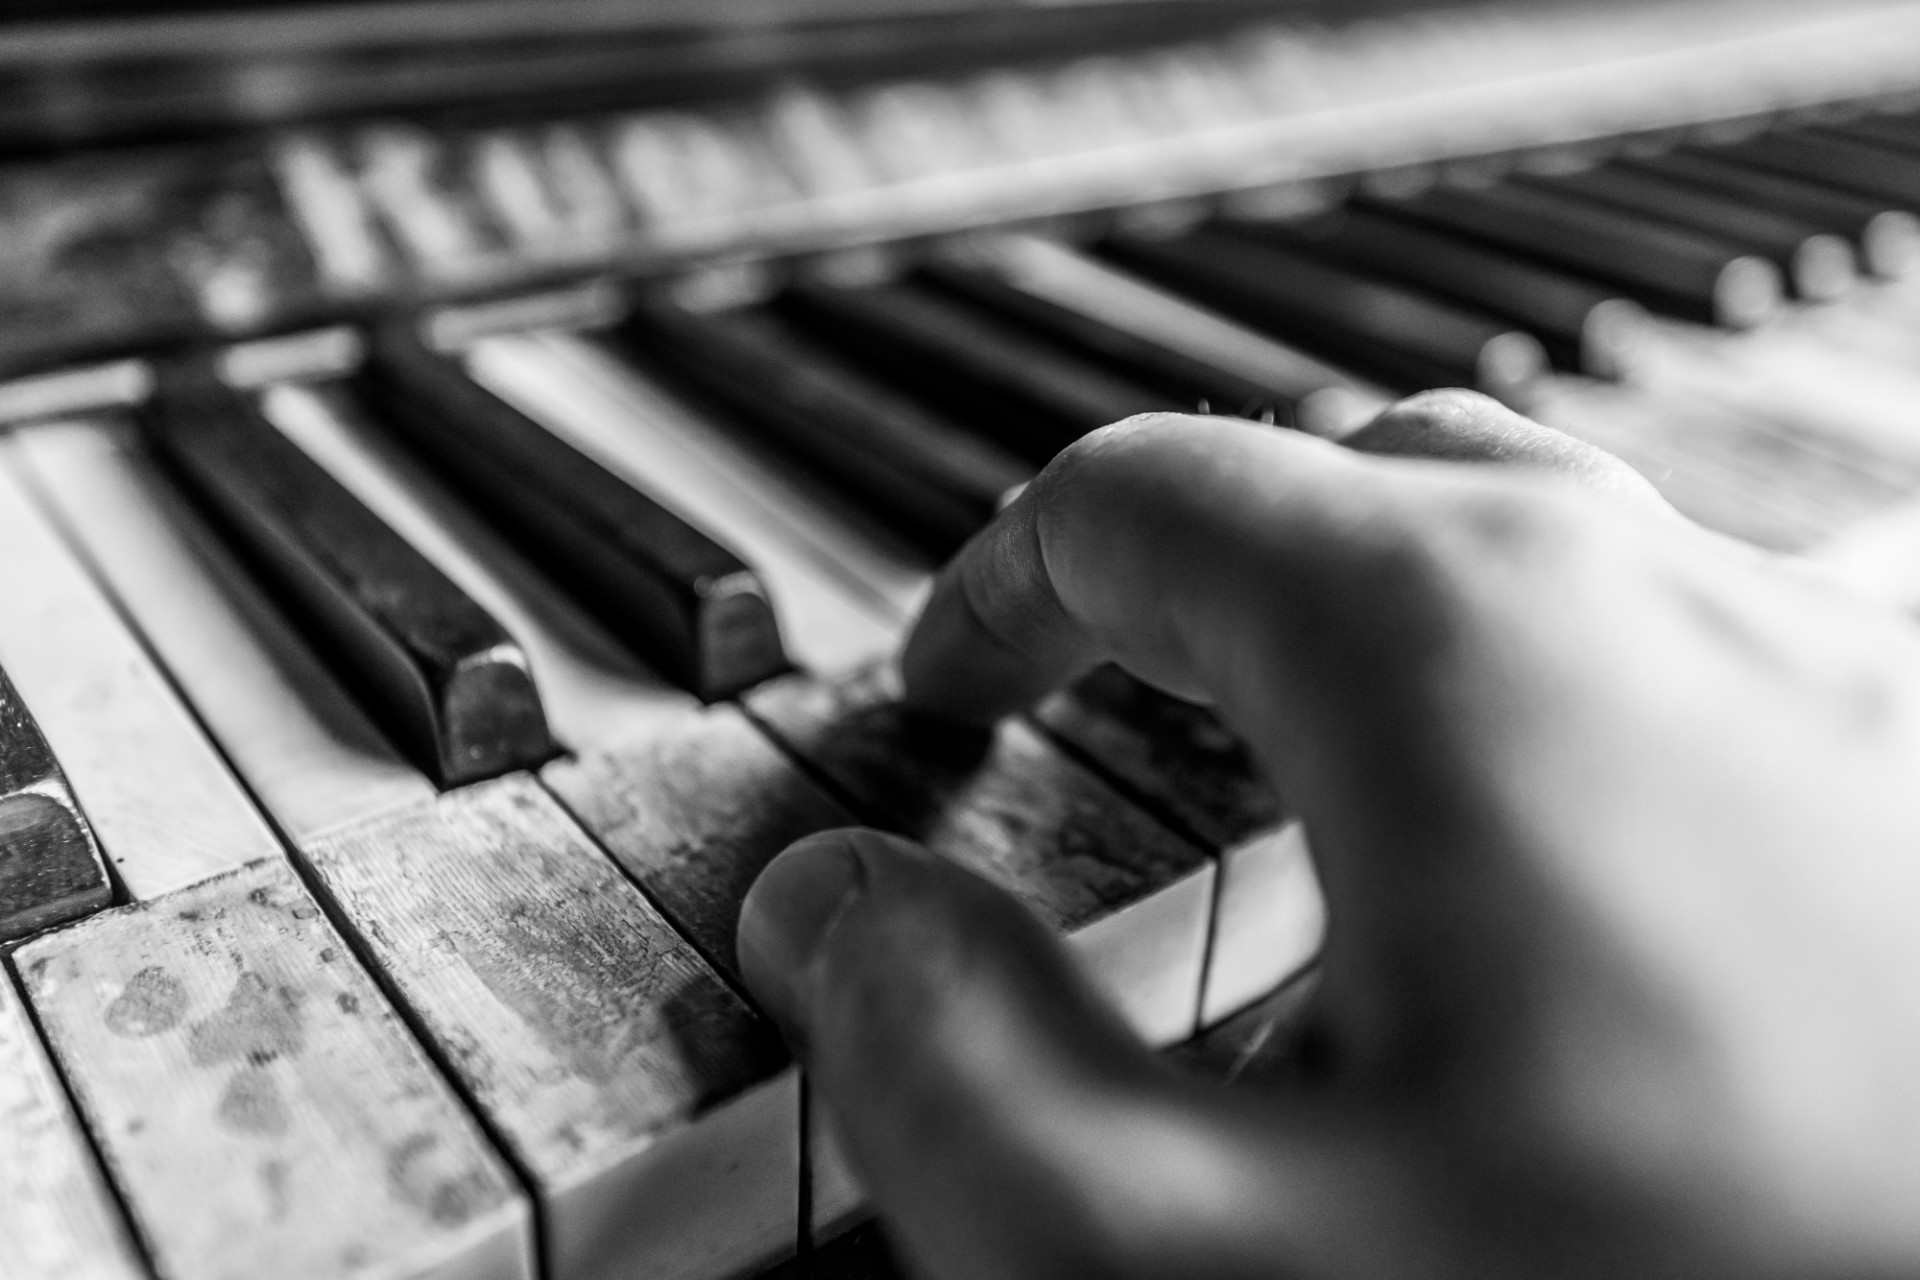 Playing on an old broken piano